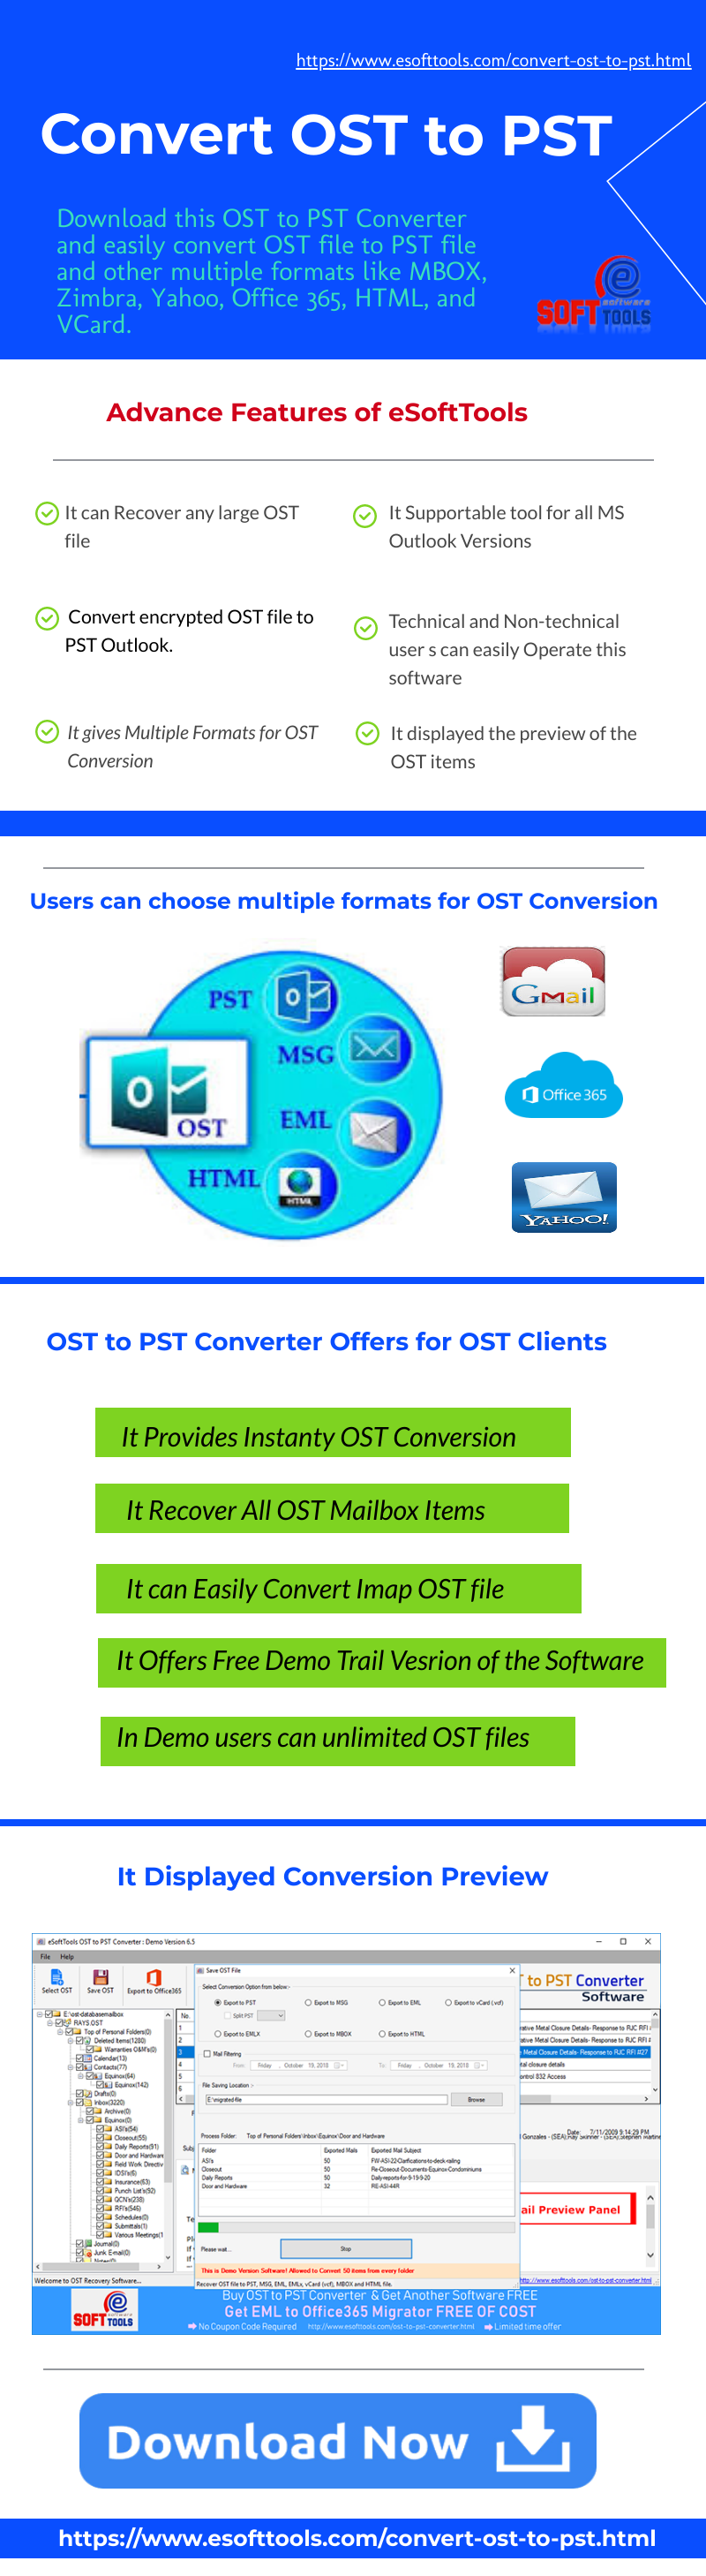 https://www.esofttools.com/infographic/ost/convertost-to-pst.png